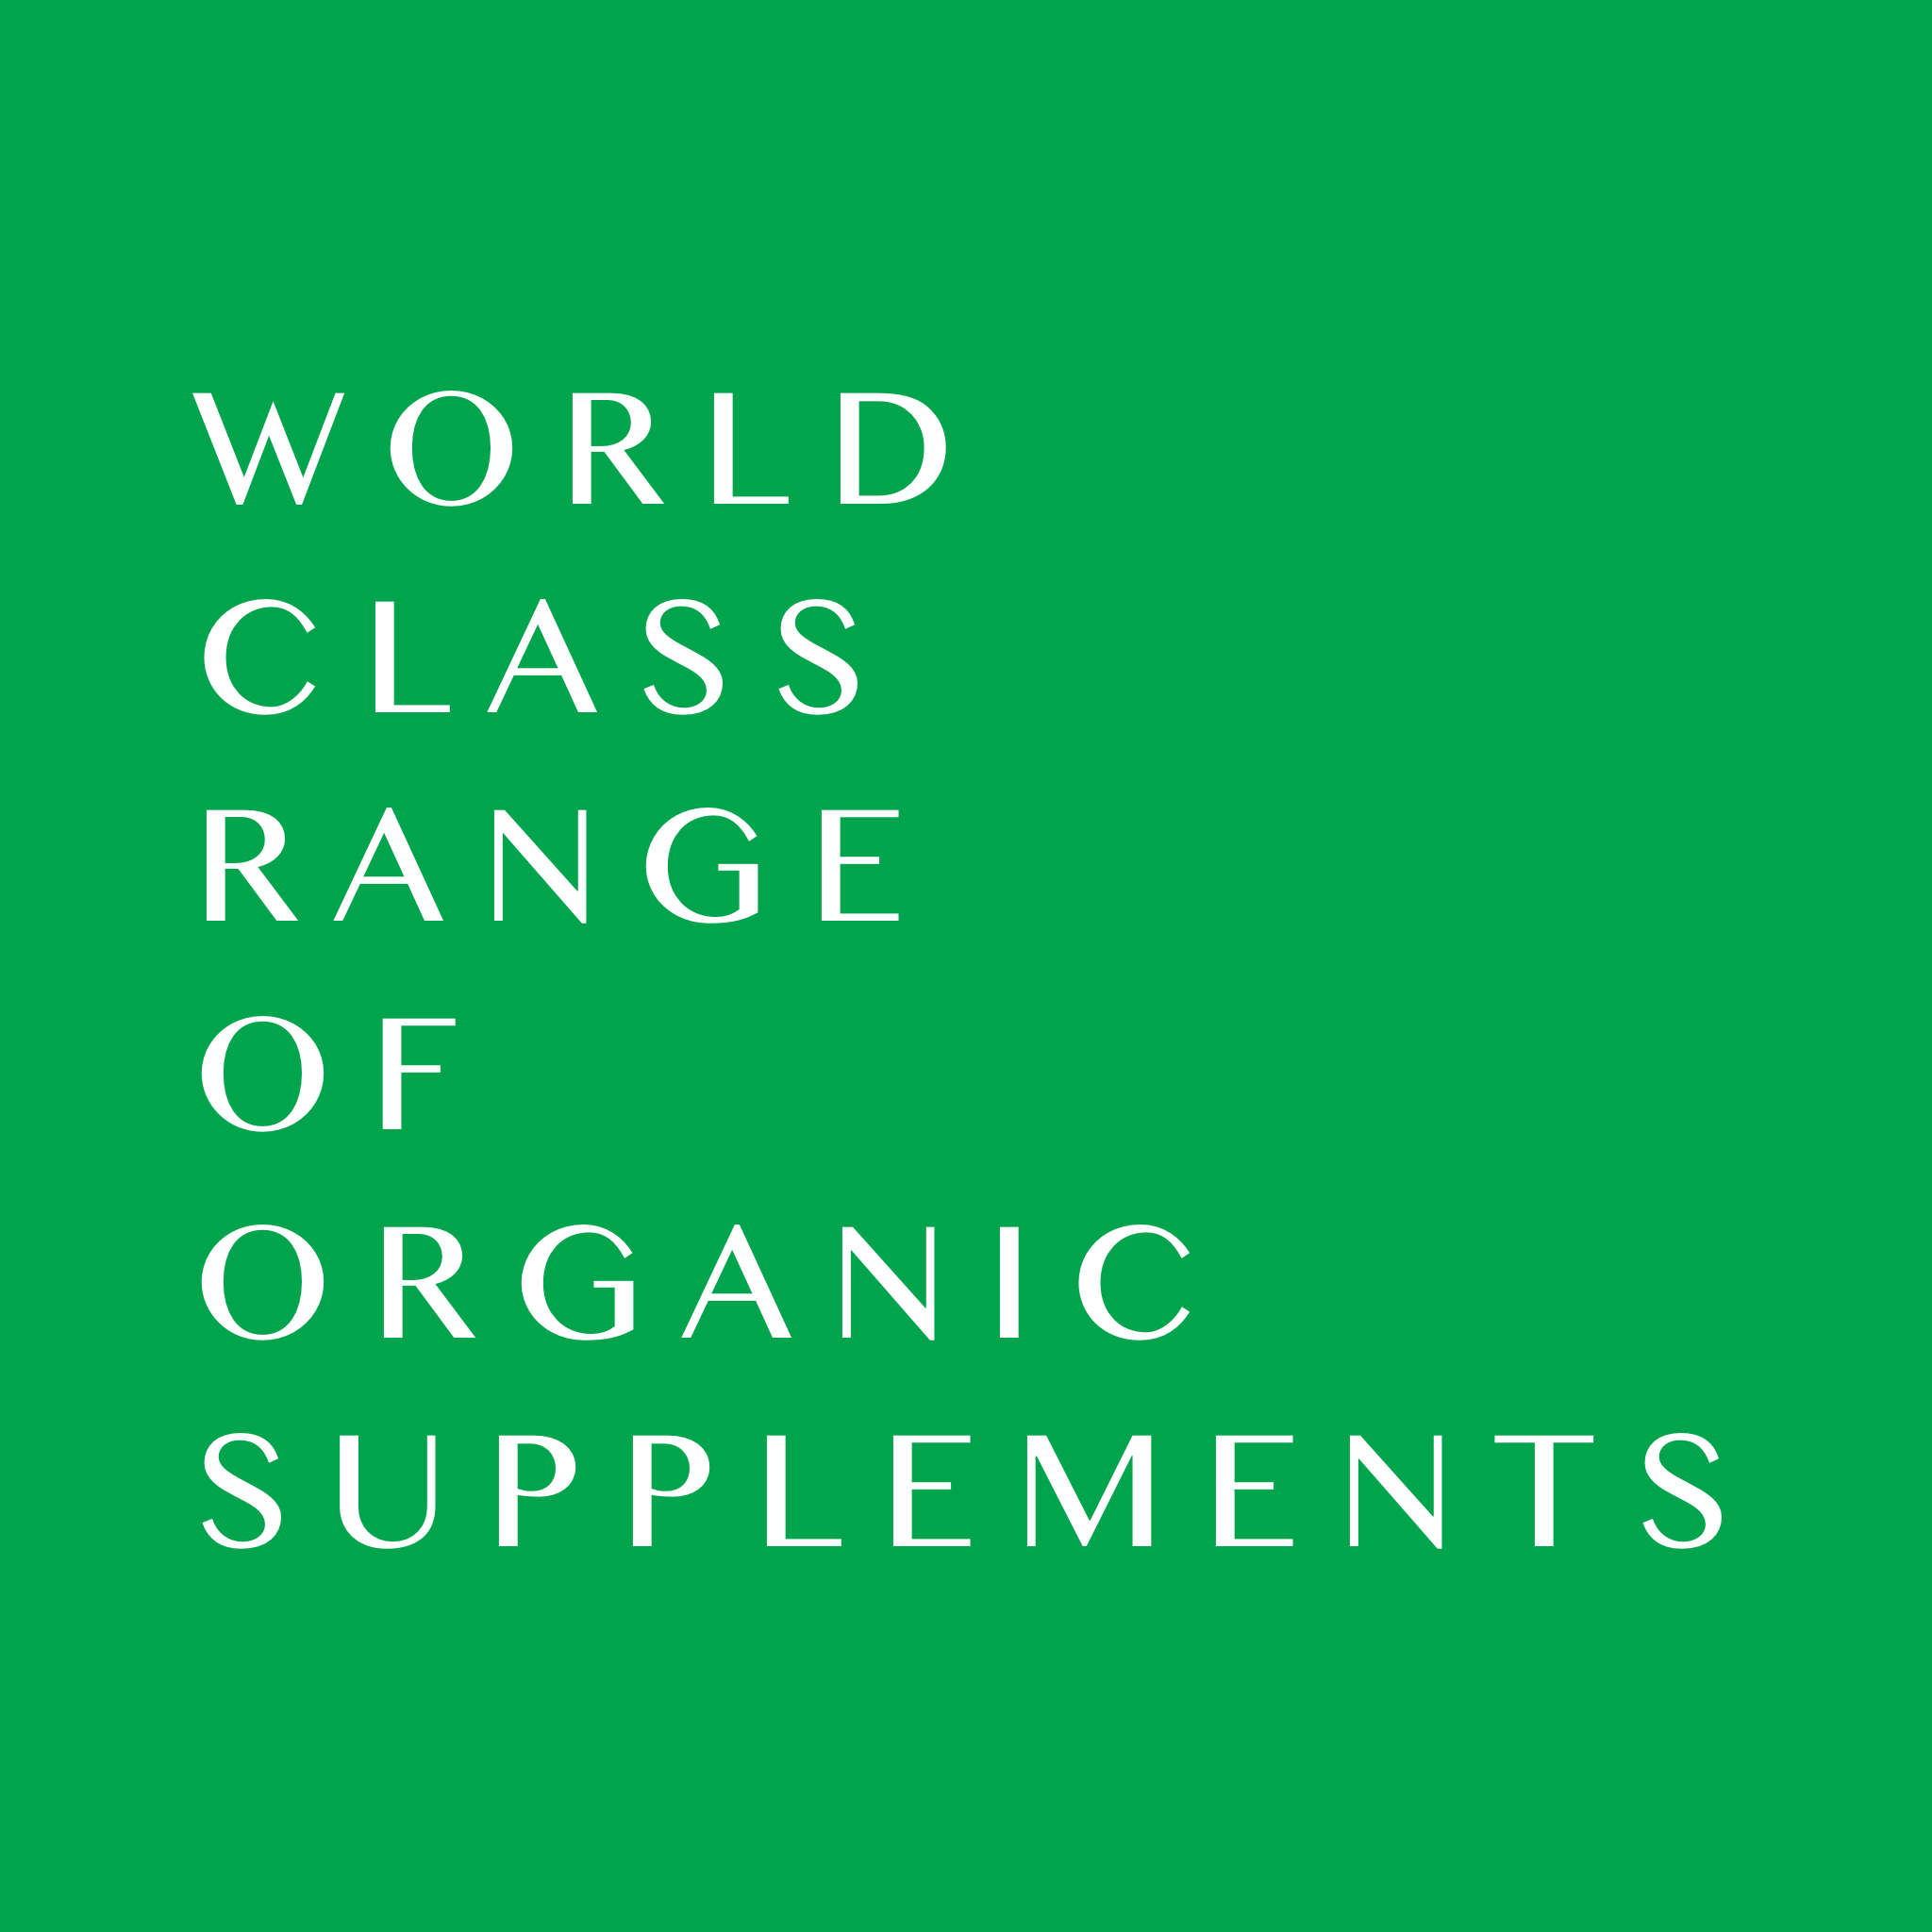 World Class range of organic supplements